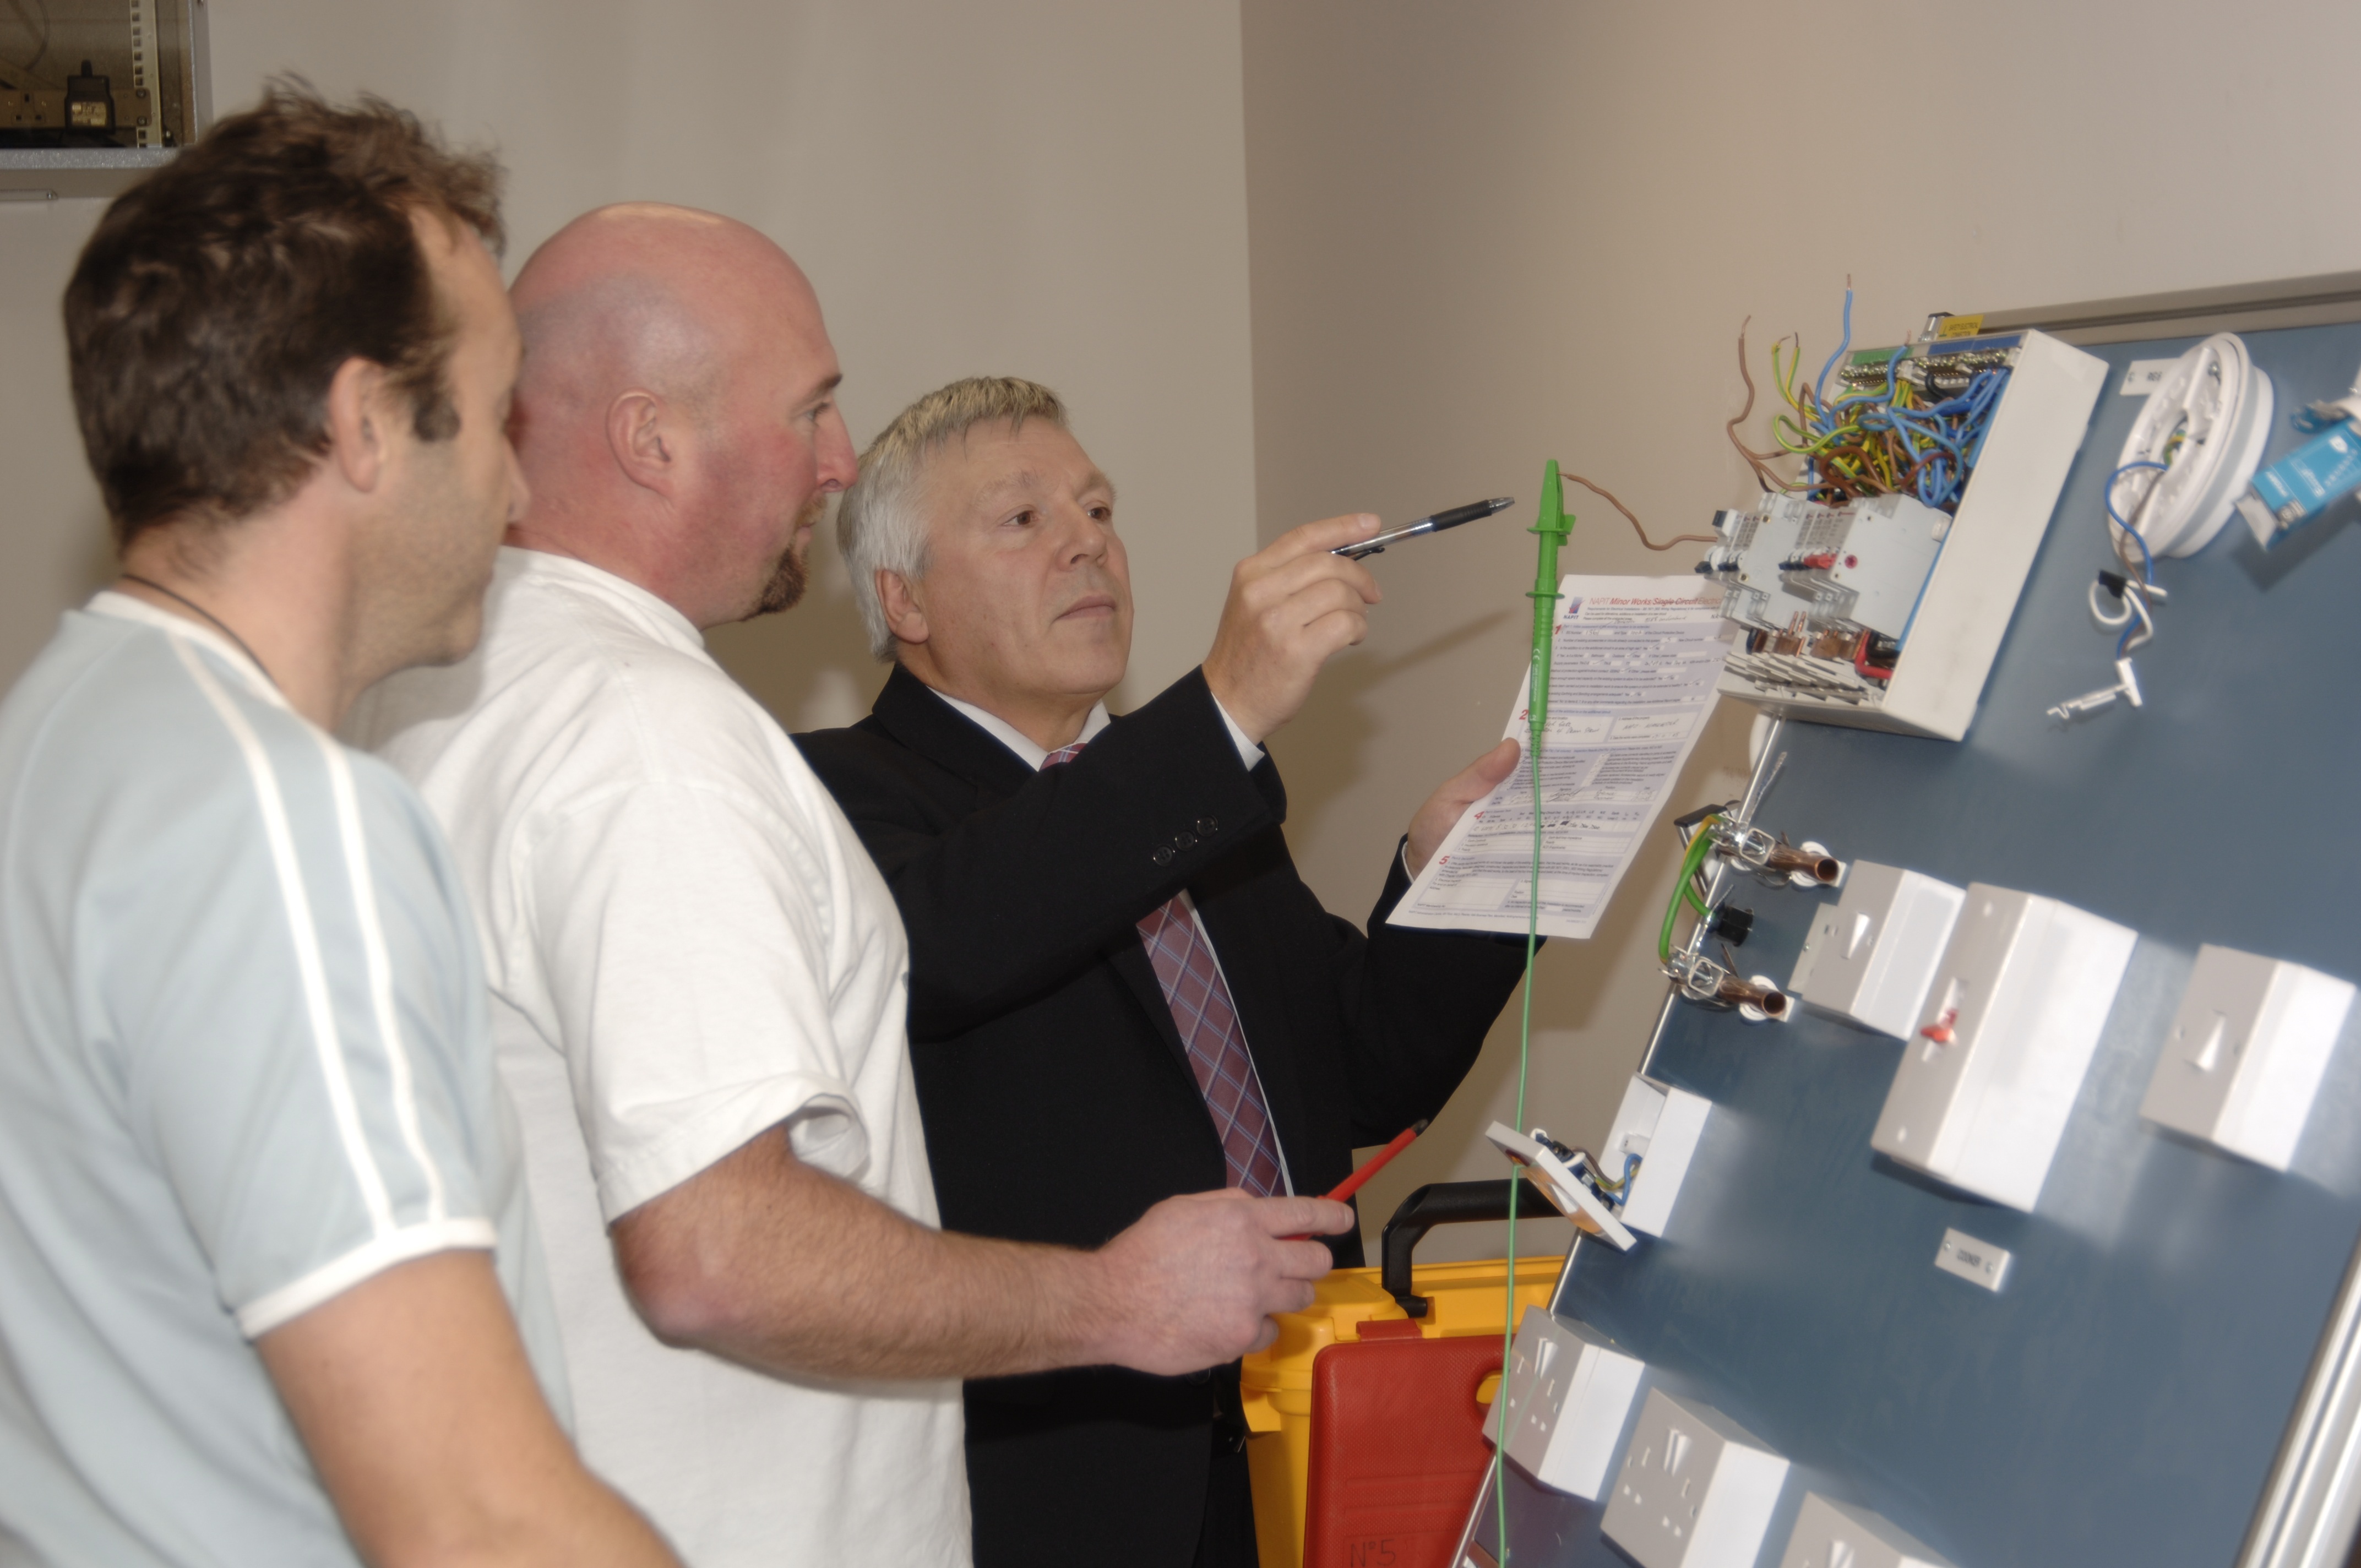 Iee 16th Edition Wiring Regulations Inspection Testing And Certification